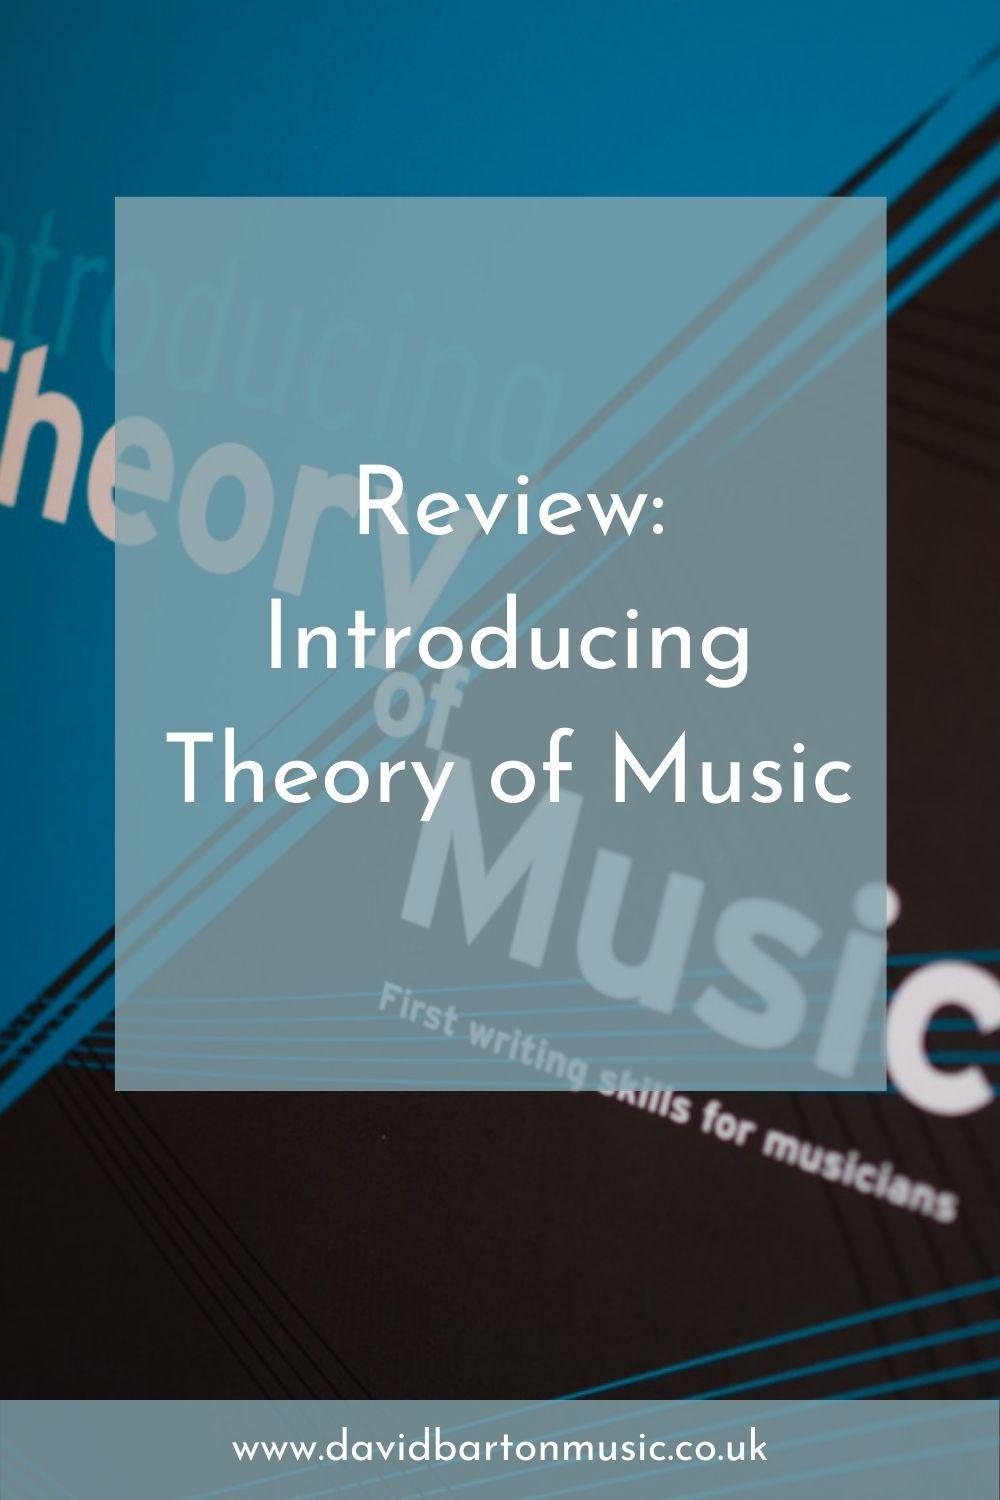 Review: Introducing Theory of Music - Pinterest Graphic